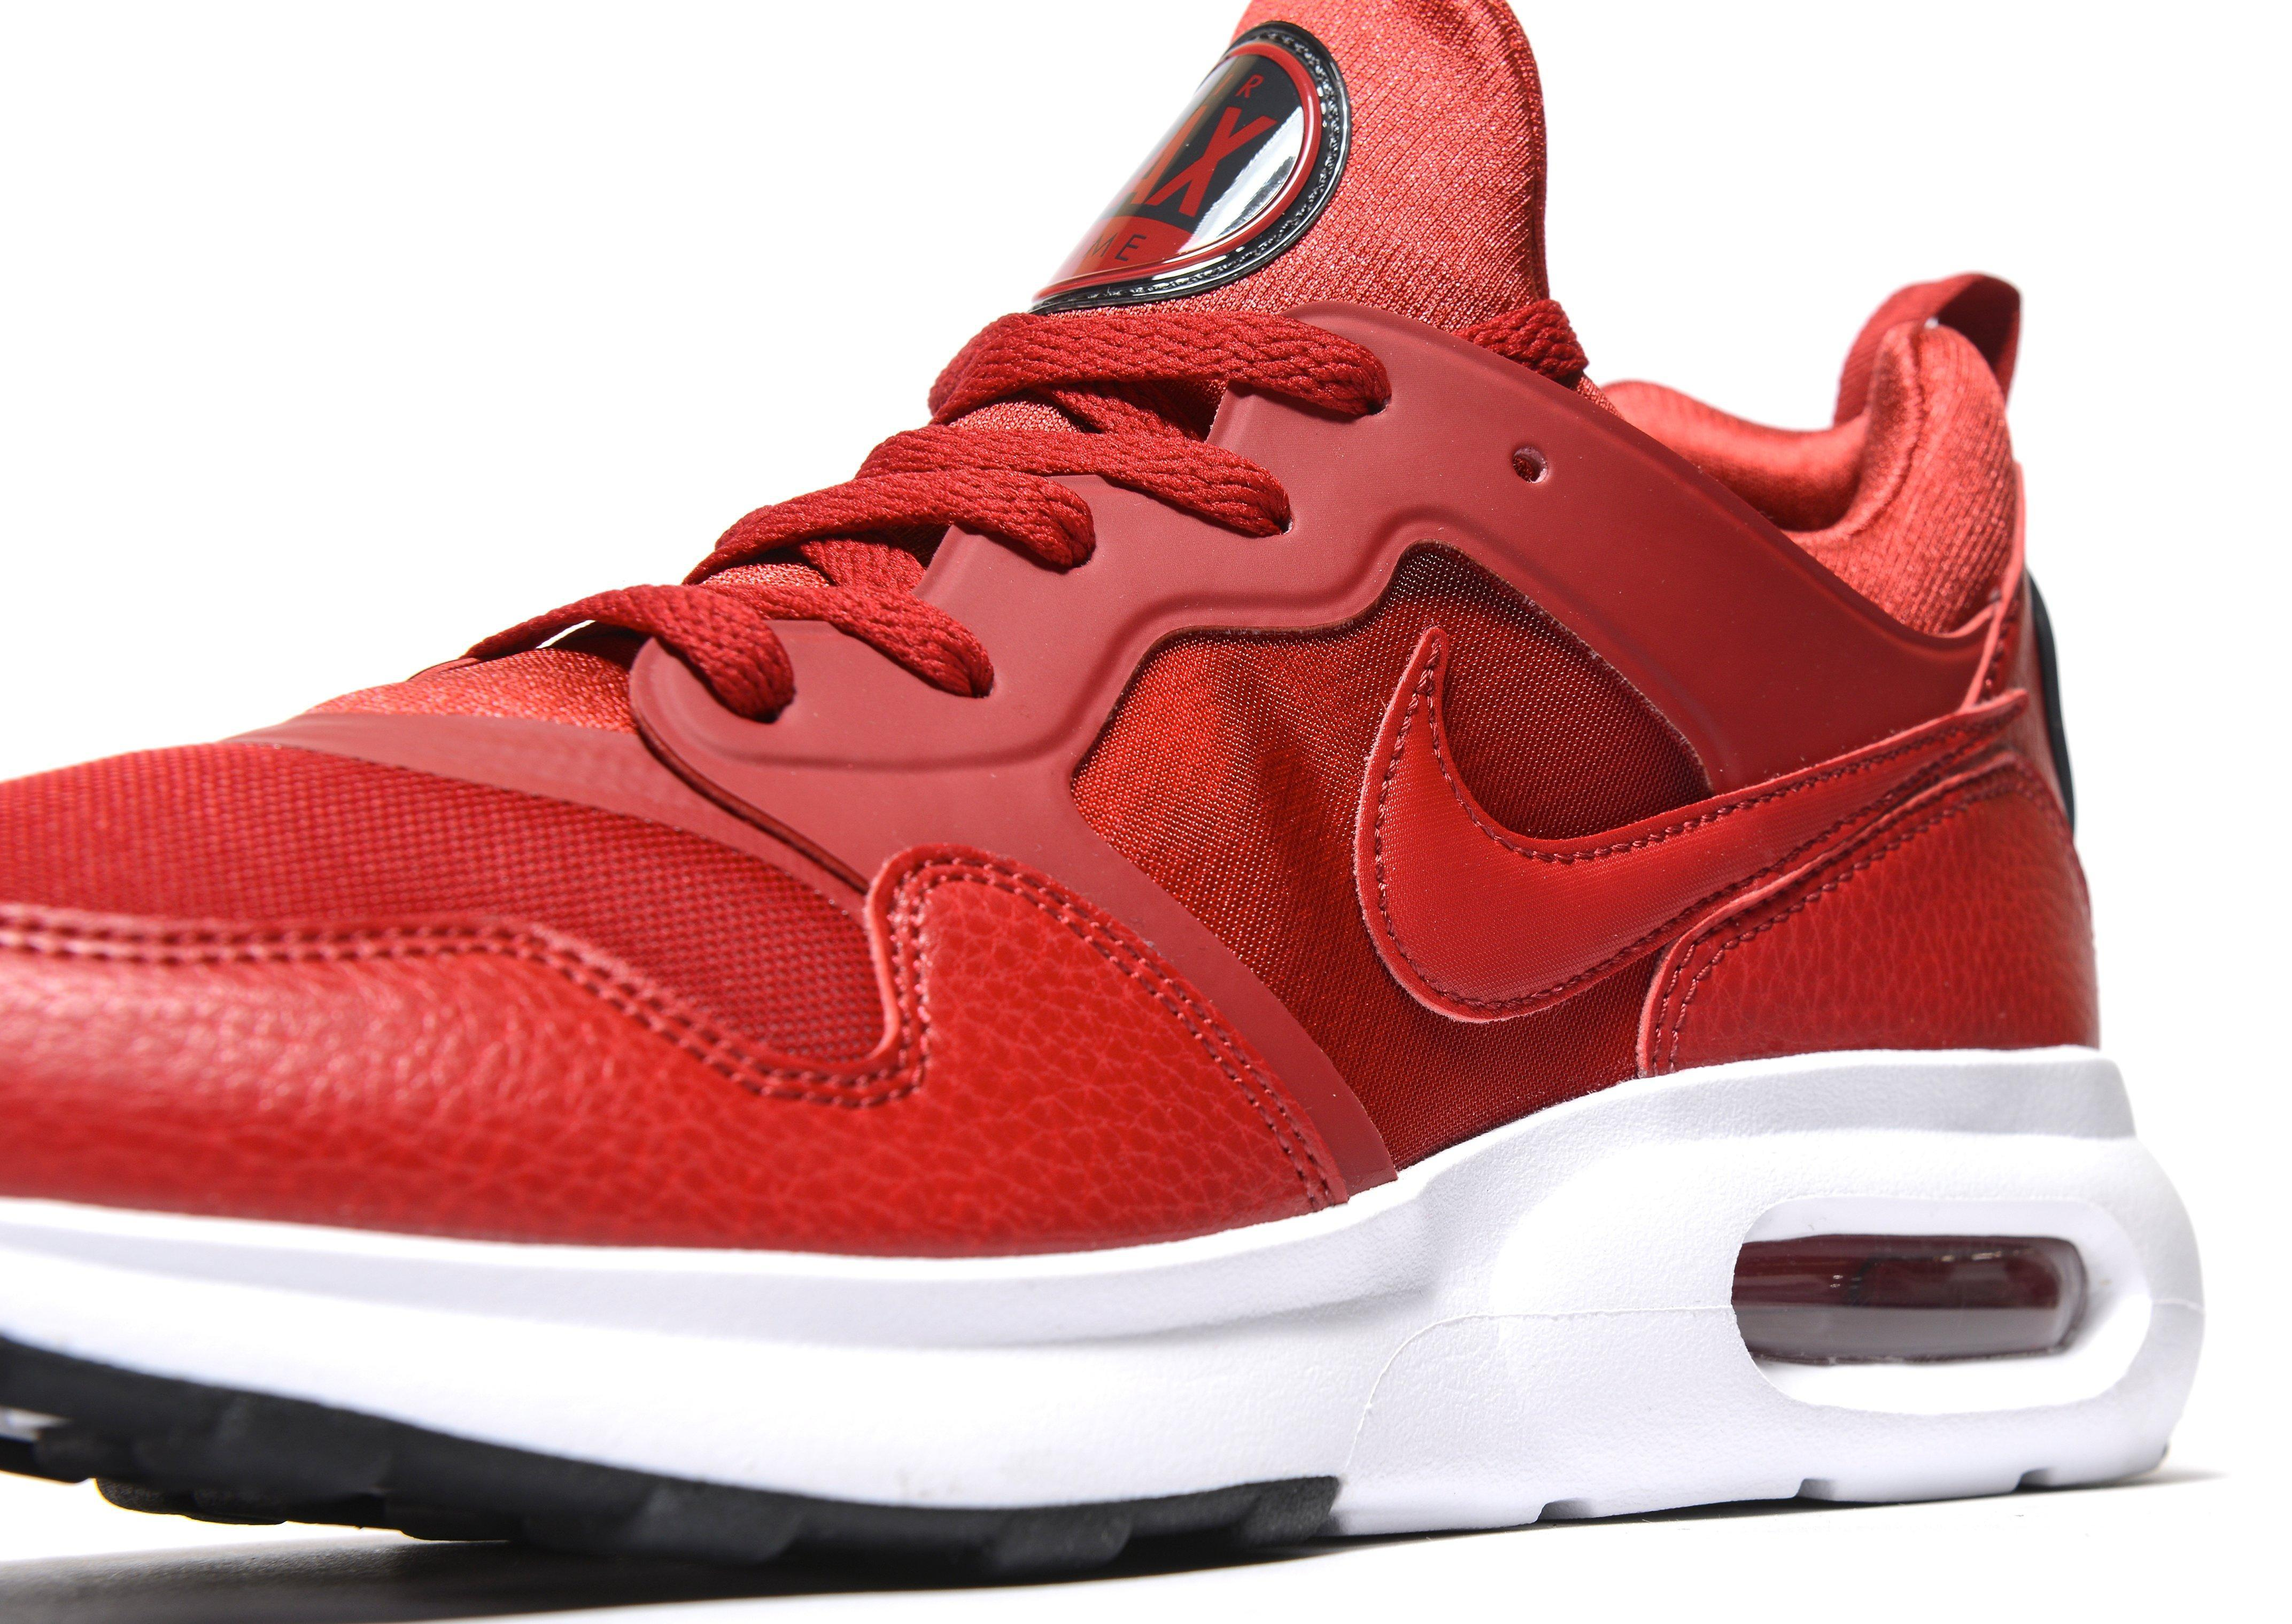 92c6232f ... get lyst nike air max prime in red for men 20f31 2c6e1